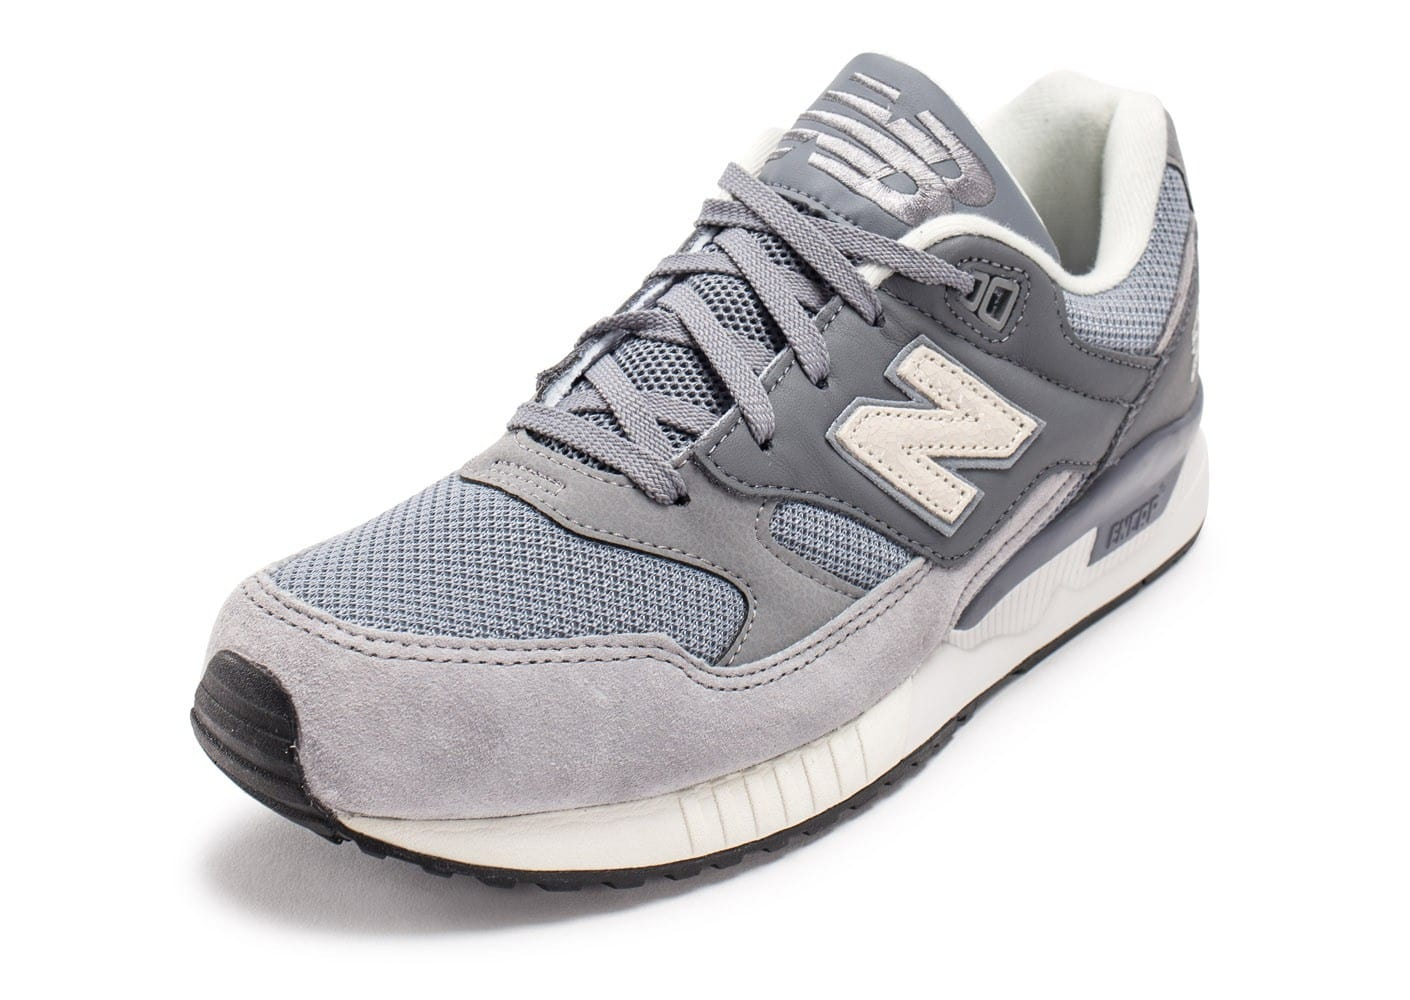 New Balance M530 Oxidation C grise Chaussures Baskets